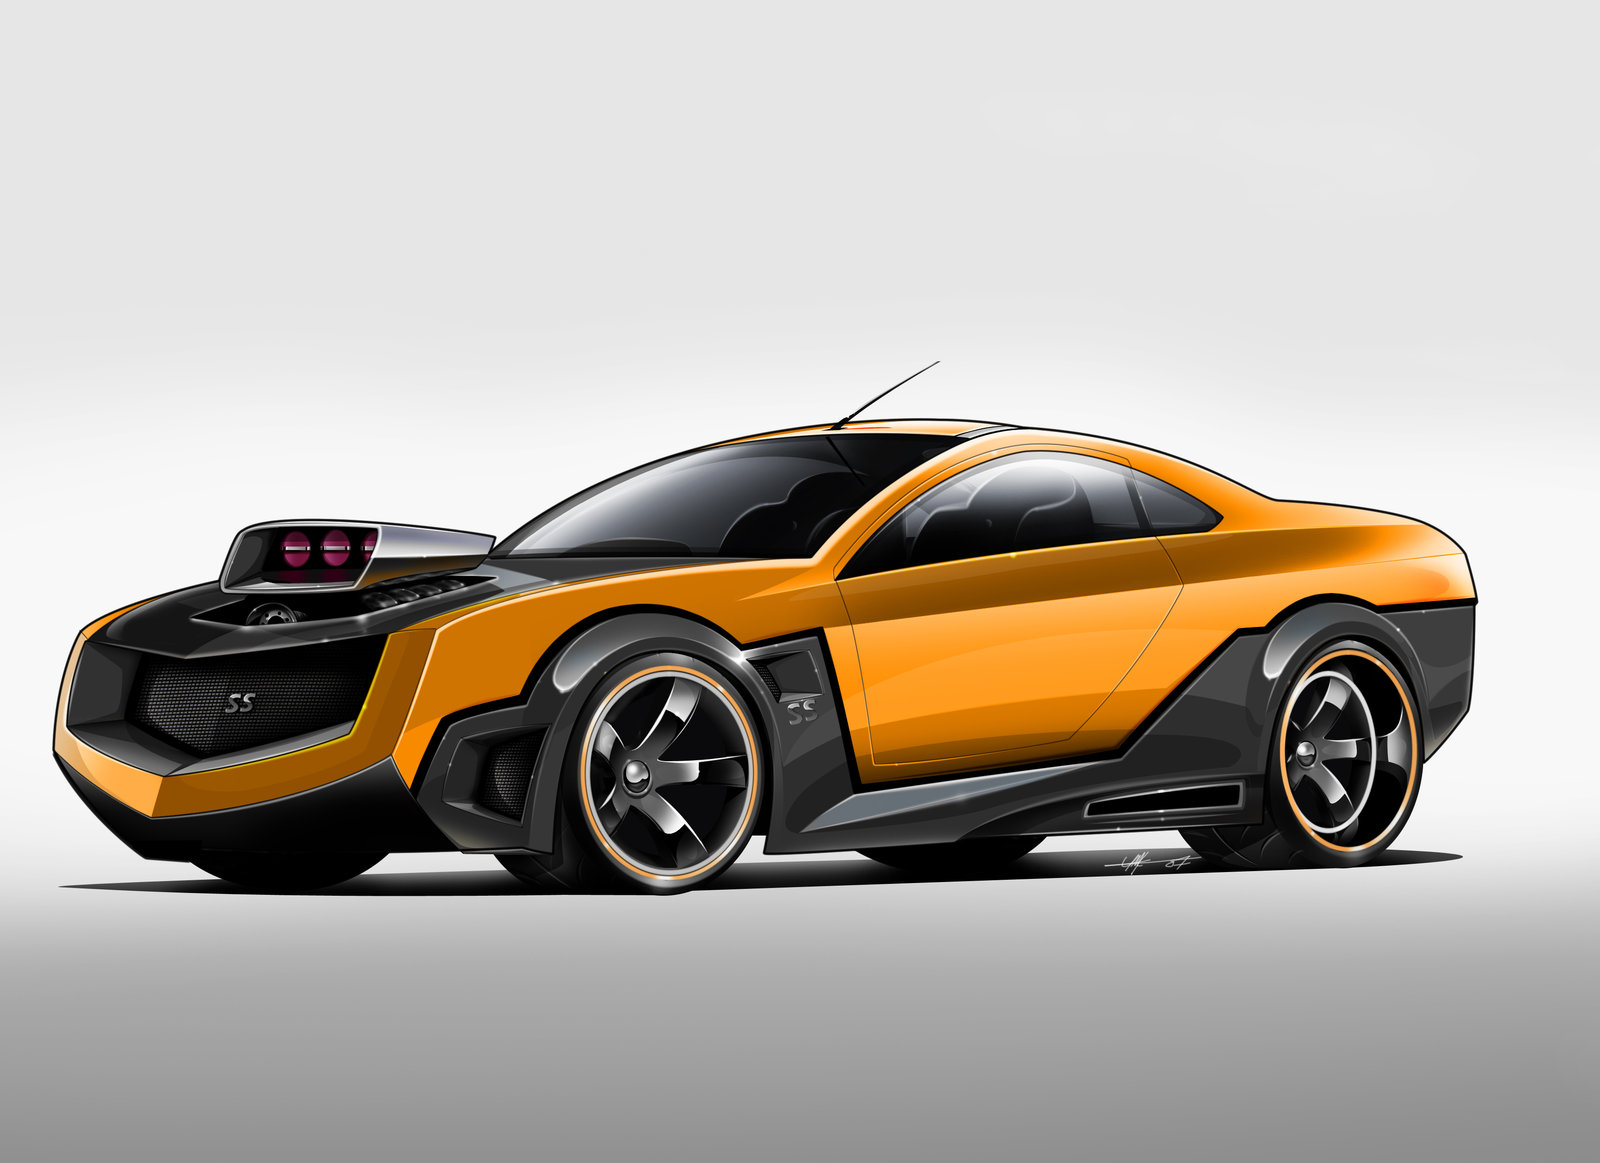 Free Wallpaper Arta Cafelei Concept Cars Wallpapers